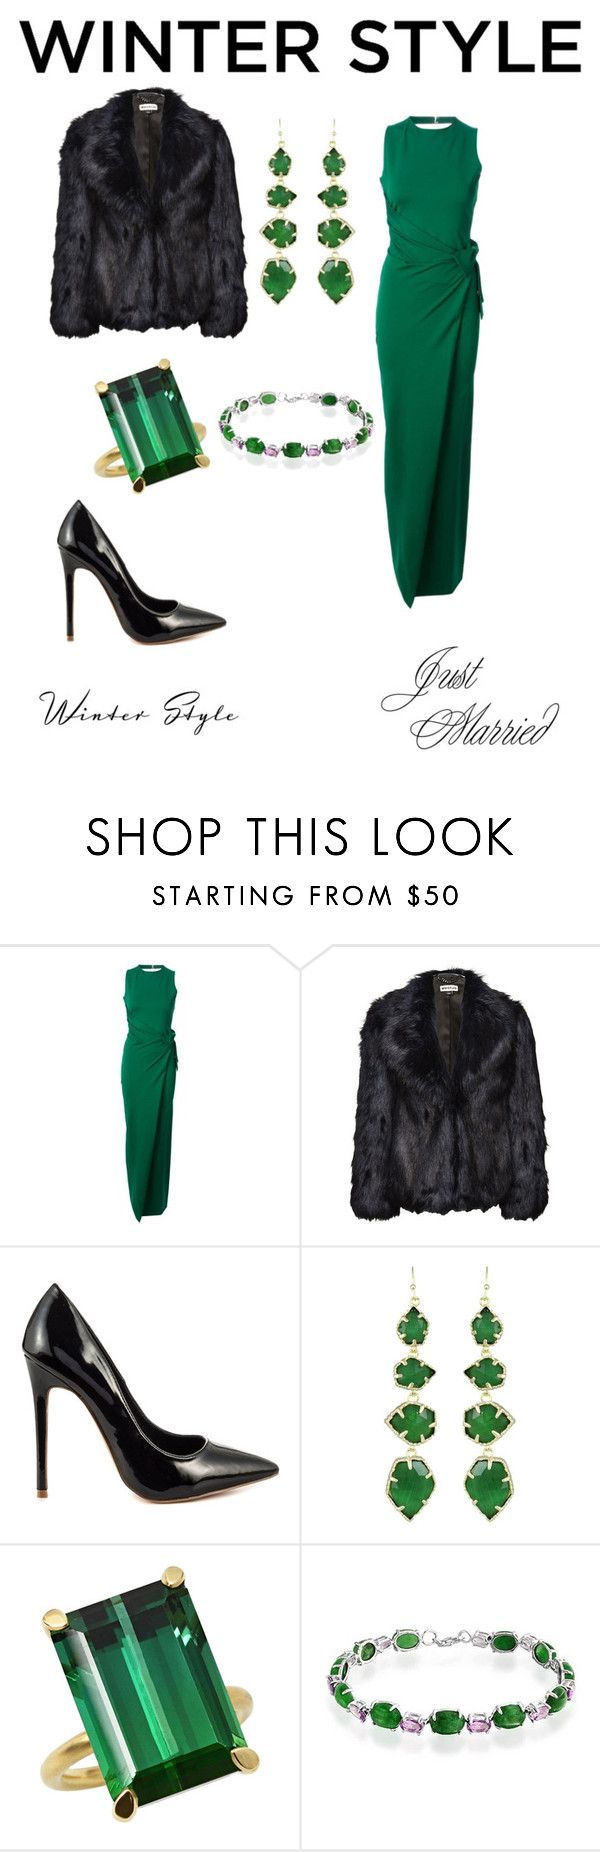 """Winter Style"" by followme734 ❤ liked on Polyvore featuring Dsquared2, Whistles, Shoe Republic LA, Kendra Scott, Bling Jewelry and winterstyle"